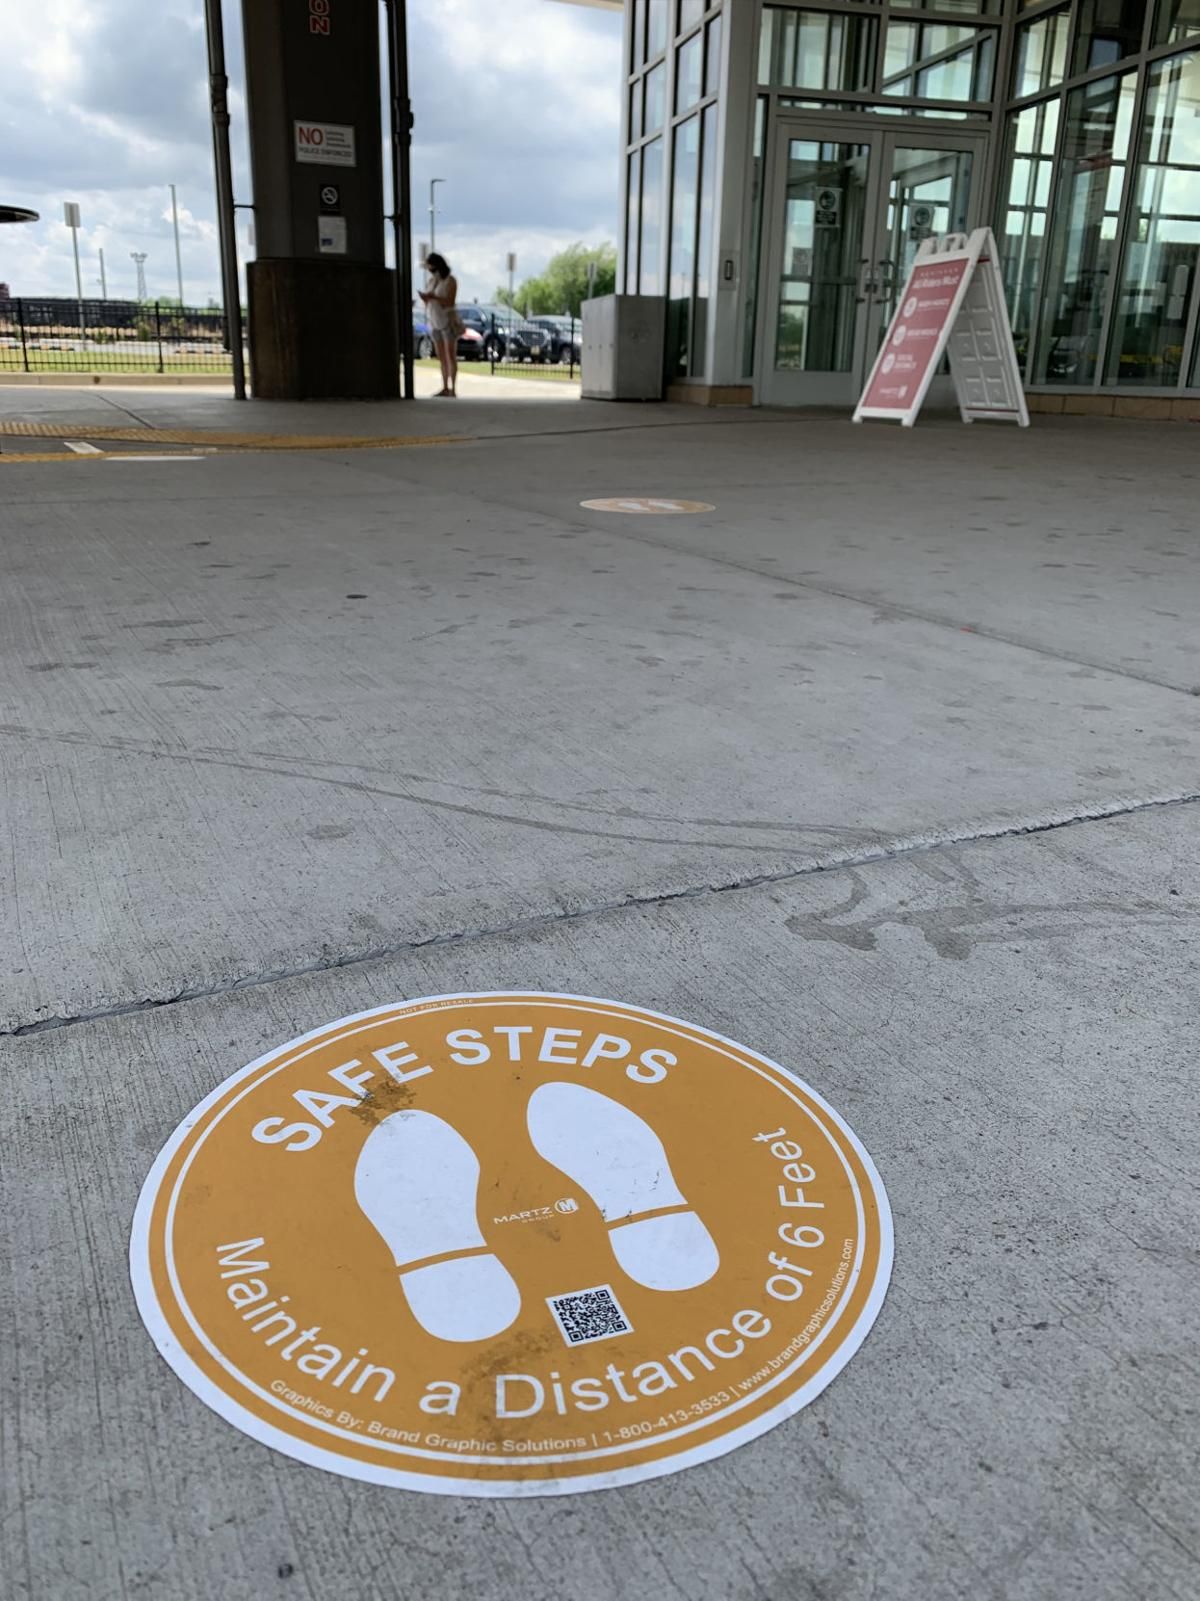 COLTS to reopen transit center, expand bus routes in green phase